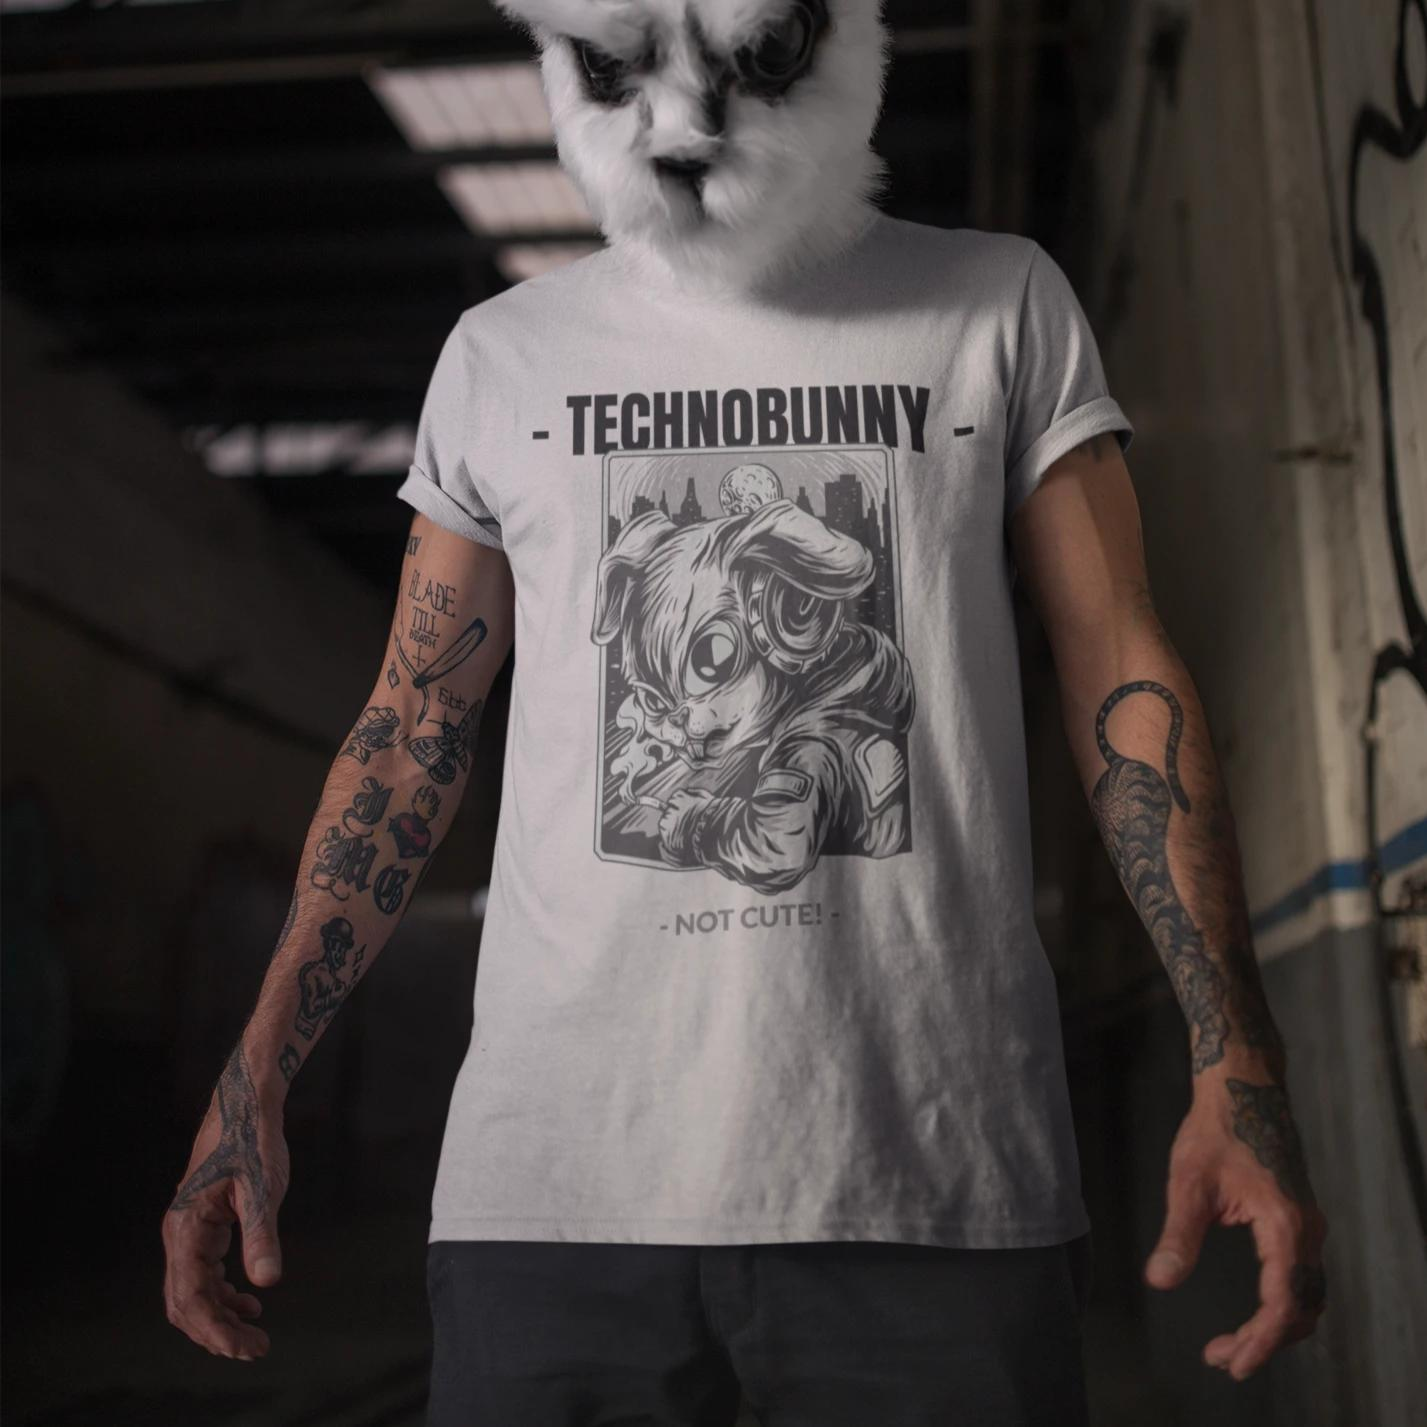 TECHNOBUNNY - Not Cute! - Rave On!® - Herren Shirt Herren Basic T-Shirt - Rave On!® der Club & Techno Szene Shop für Coole Junge Mode Streetwear Style & Fashion Outfits + Sexy Festival 420 Stuff